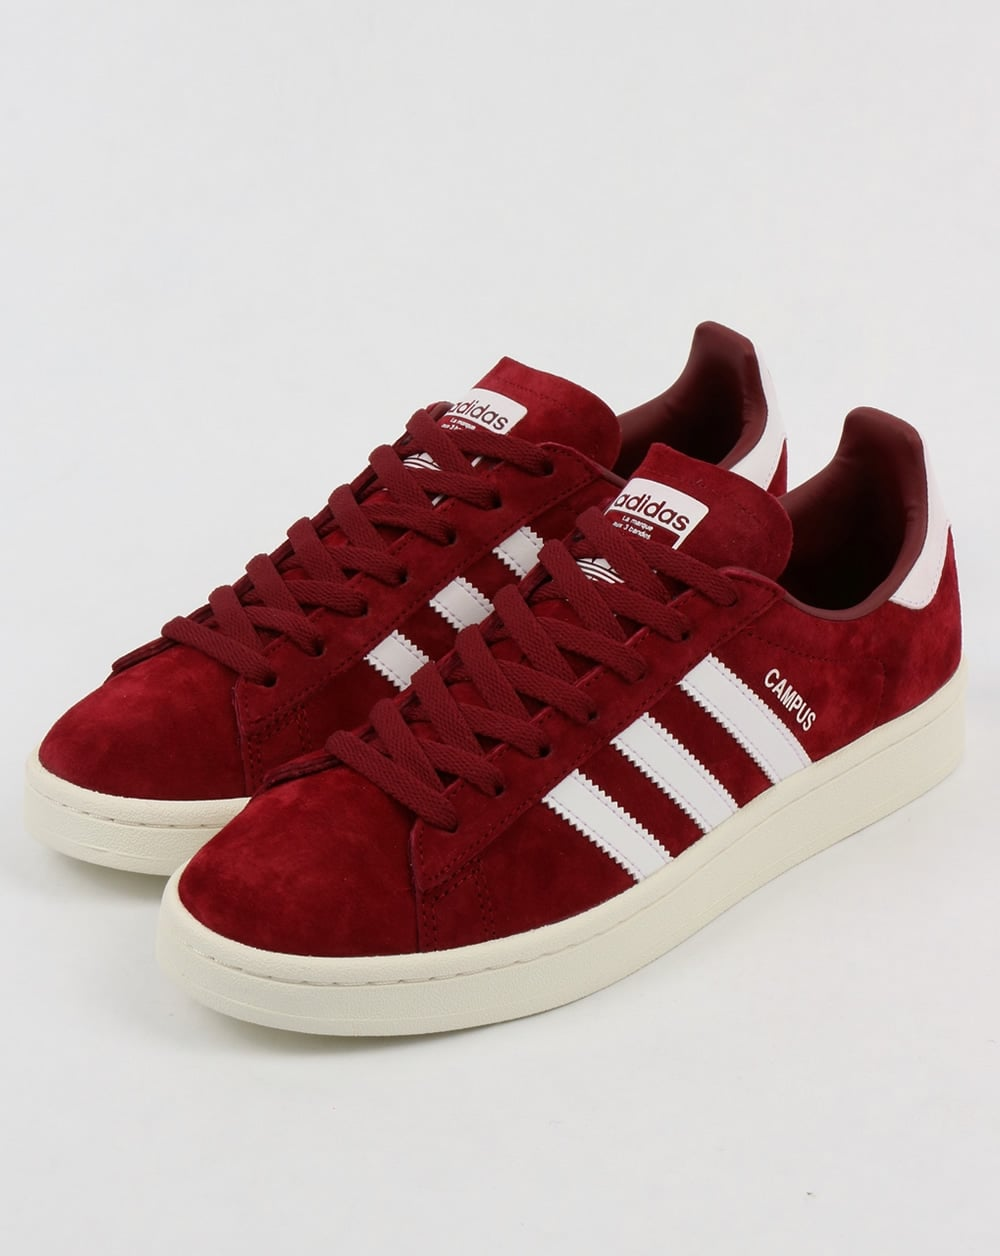 Adidas Campus Trainers Burgundy White Suede Shoes